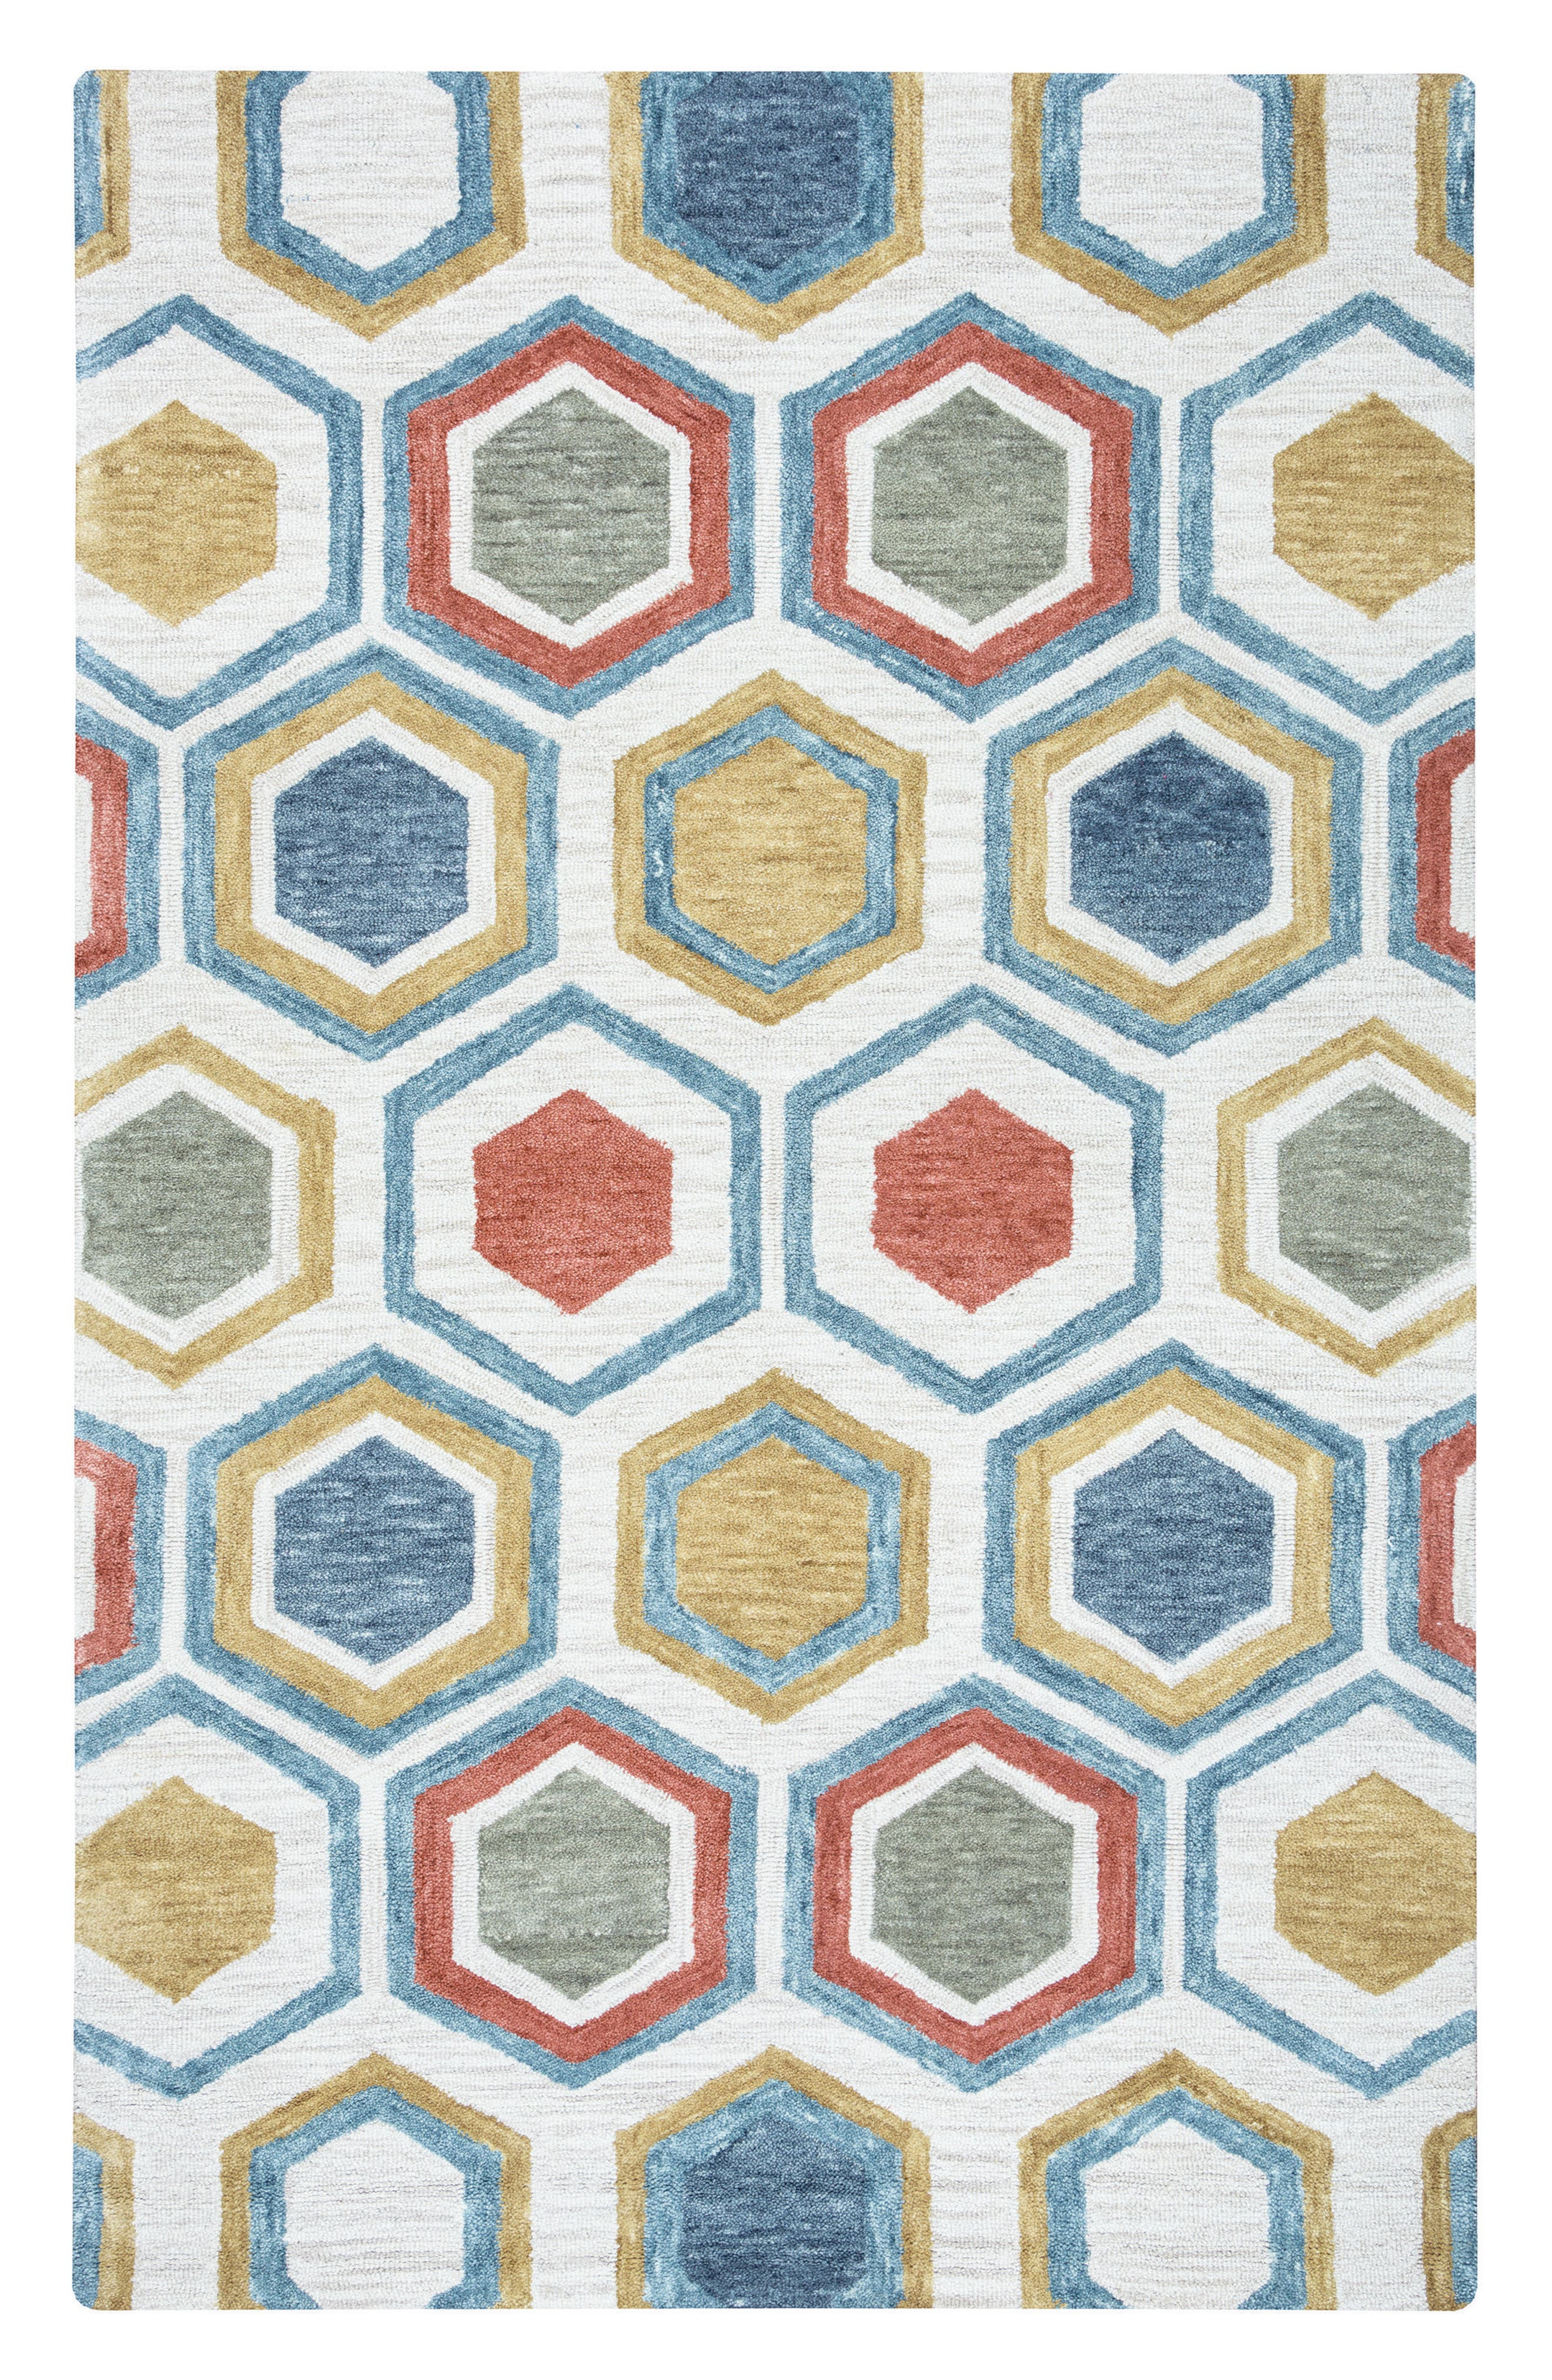 'Lancaster Geometric' Hand Tufted Wool Area Rug,                             Main thumbnail 1, color,                             020